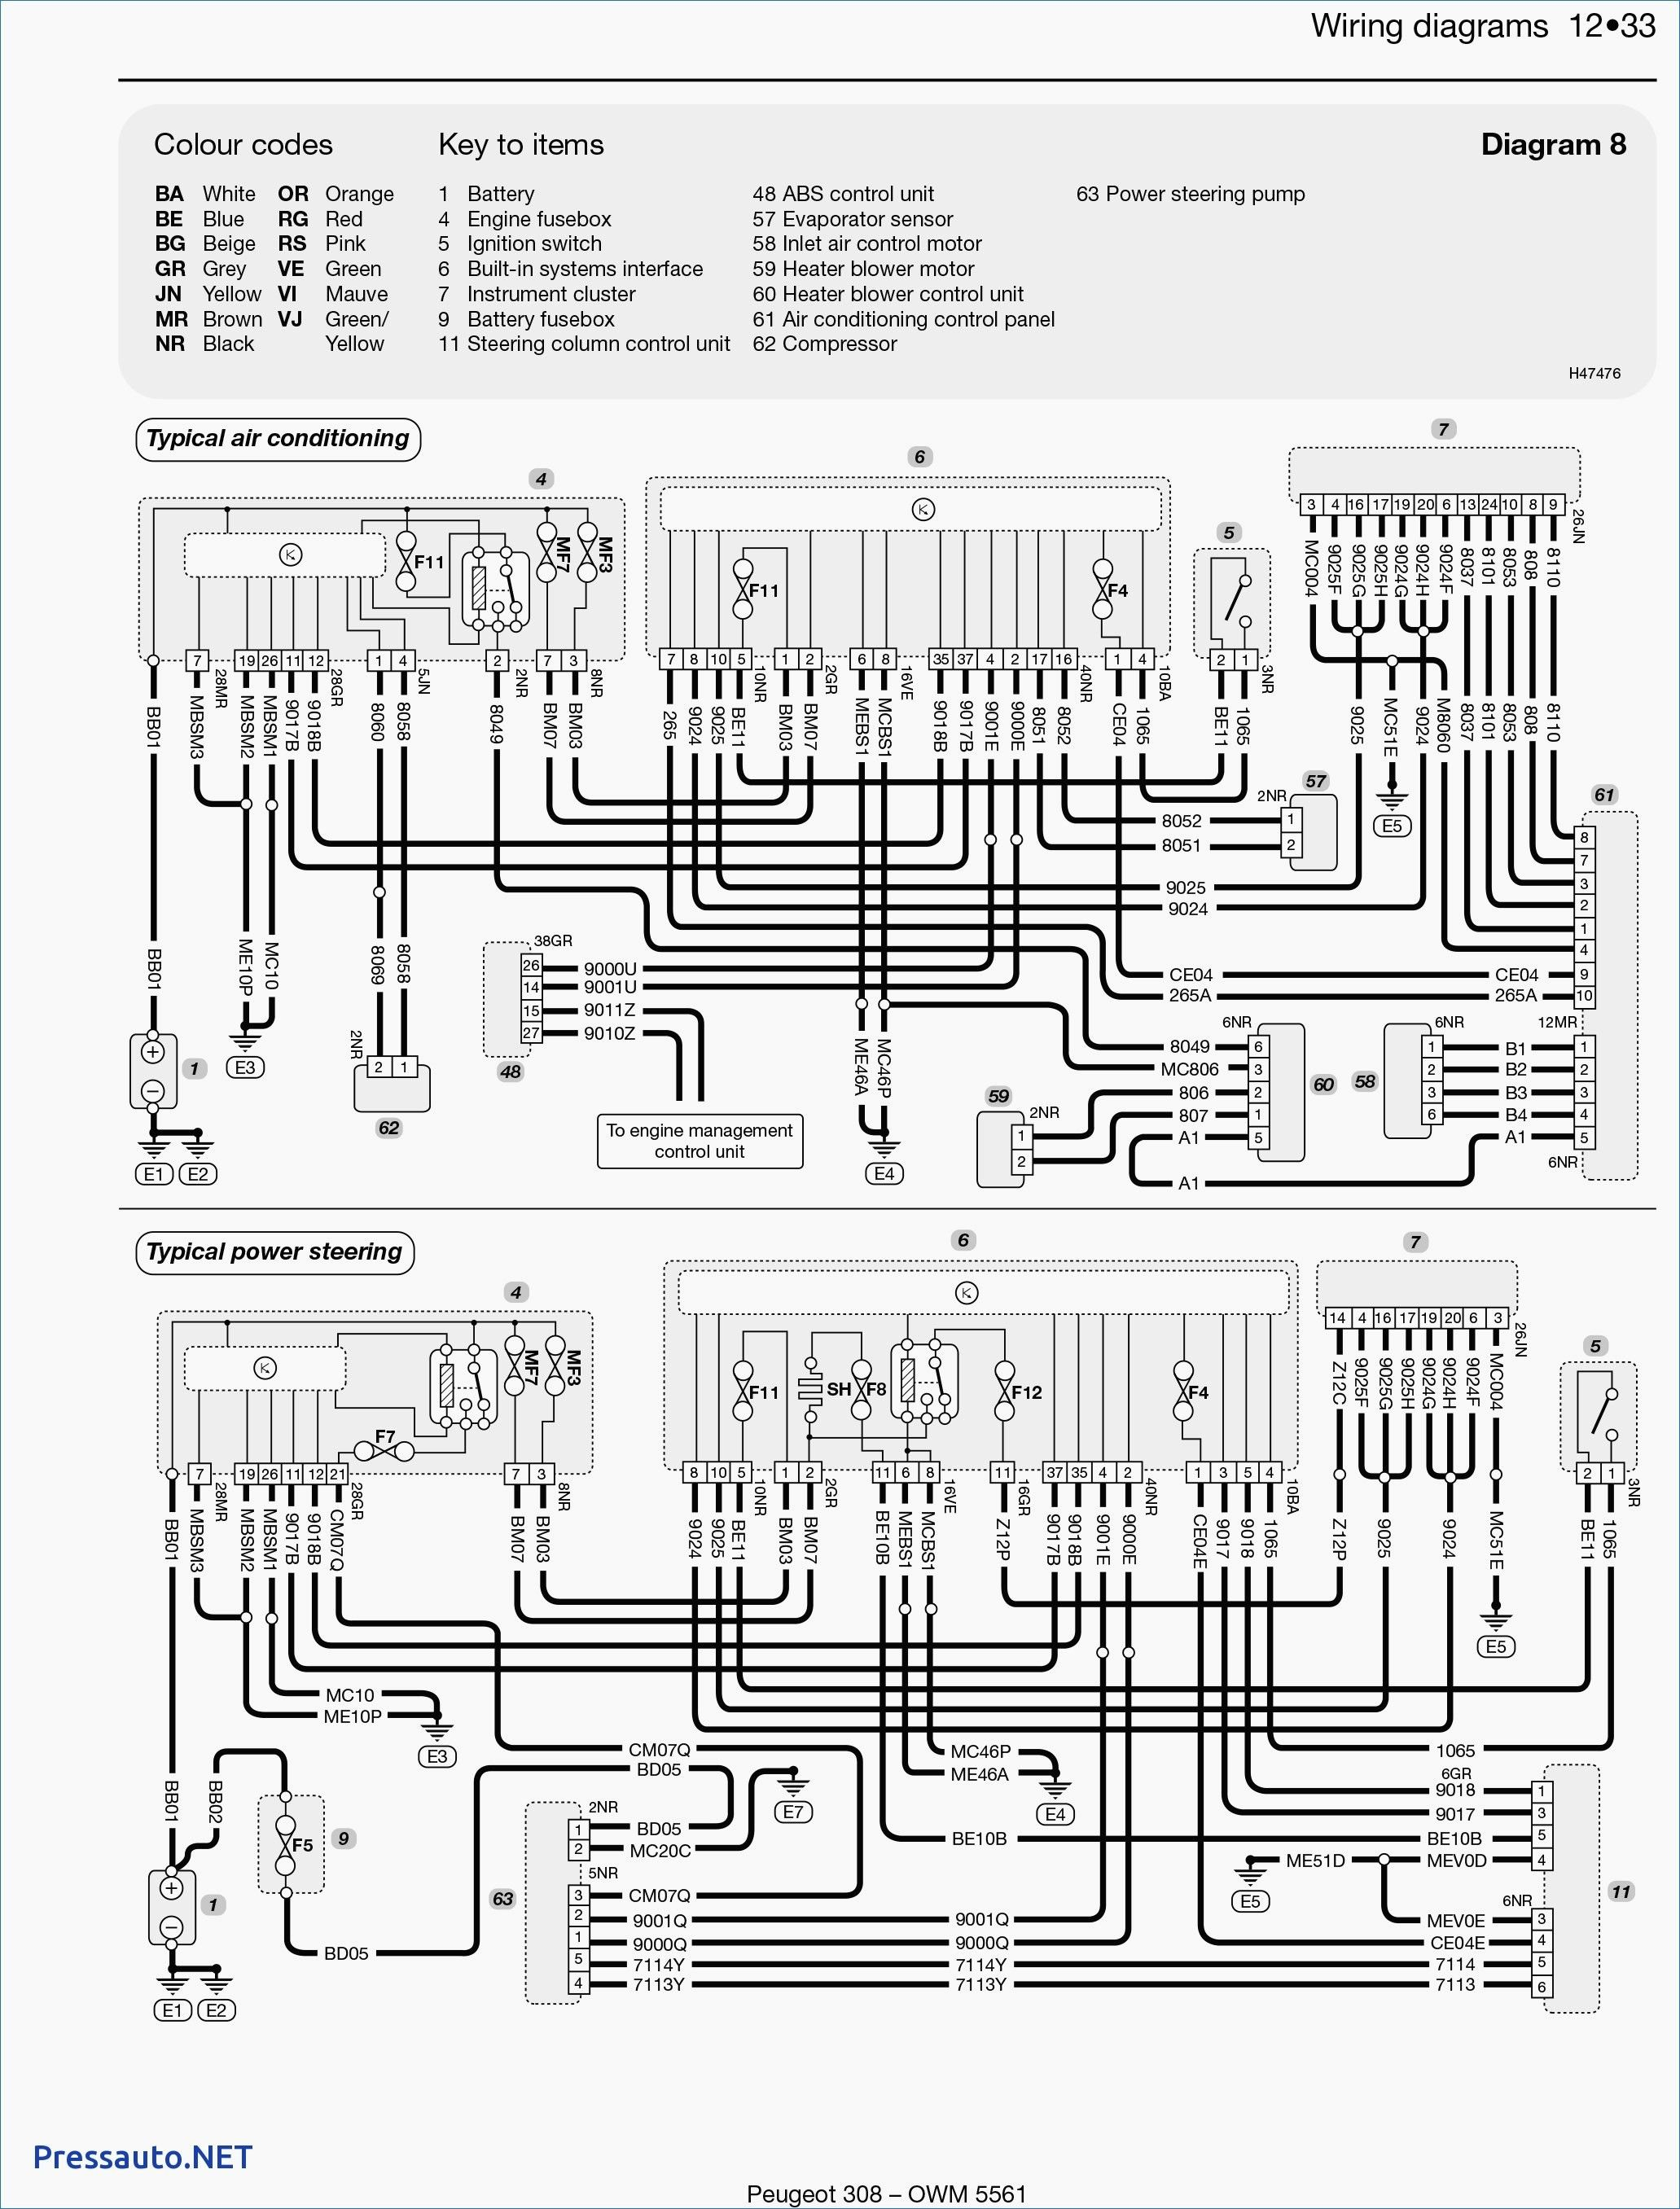 Peugeot 206 Abs Wiring Diagram Largest Database 1997 Bmw 528i For Stereo Best Of Fortable In Ewolucja Rh Pinterest Com System Brake Line